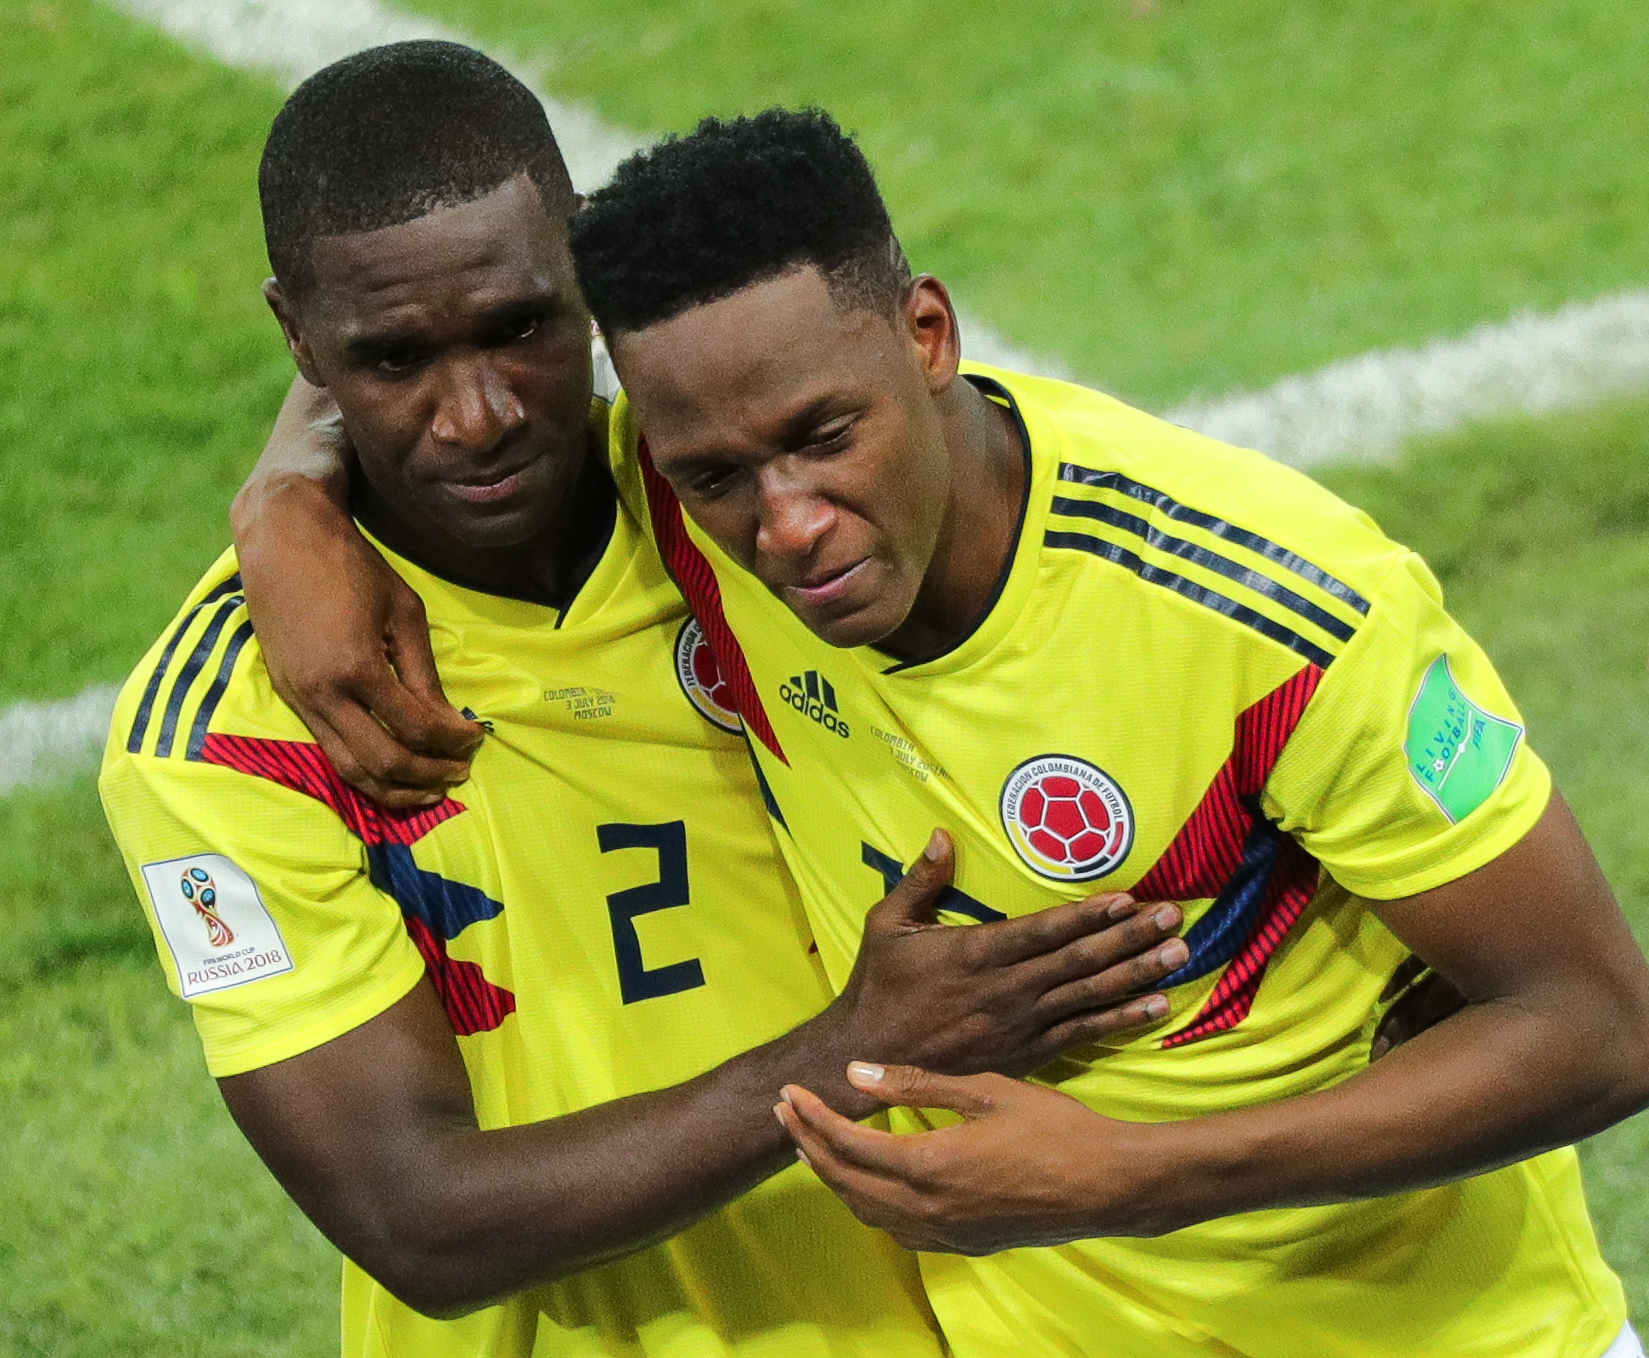 World Cup 2018 - Colombia vs England